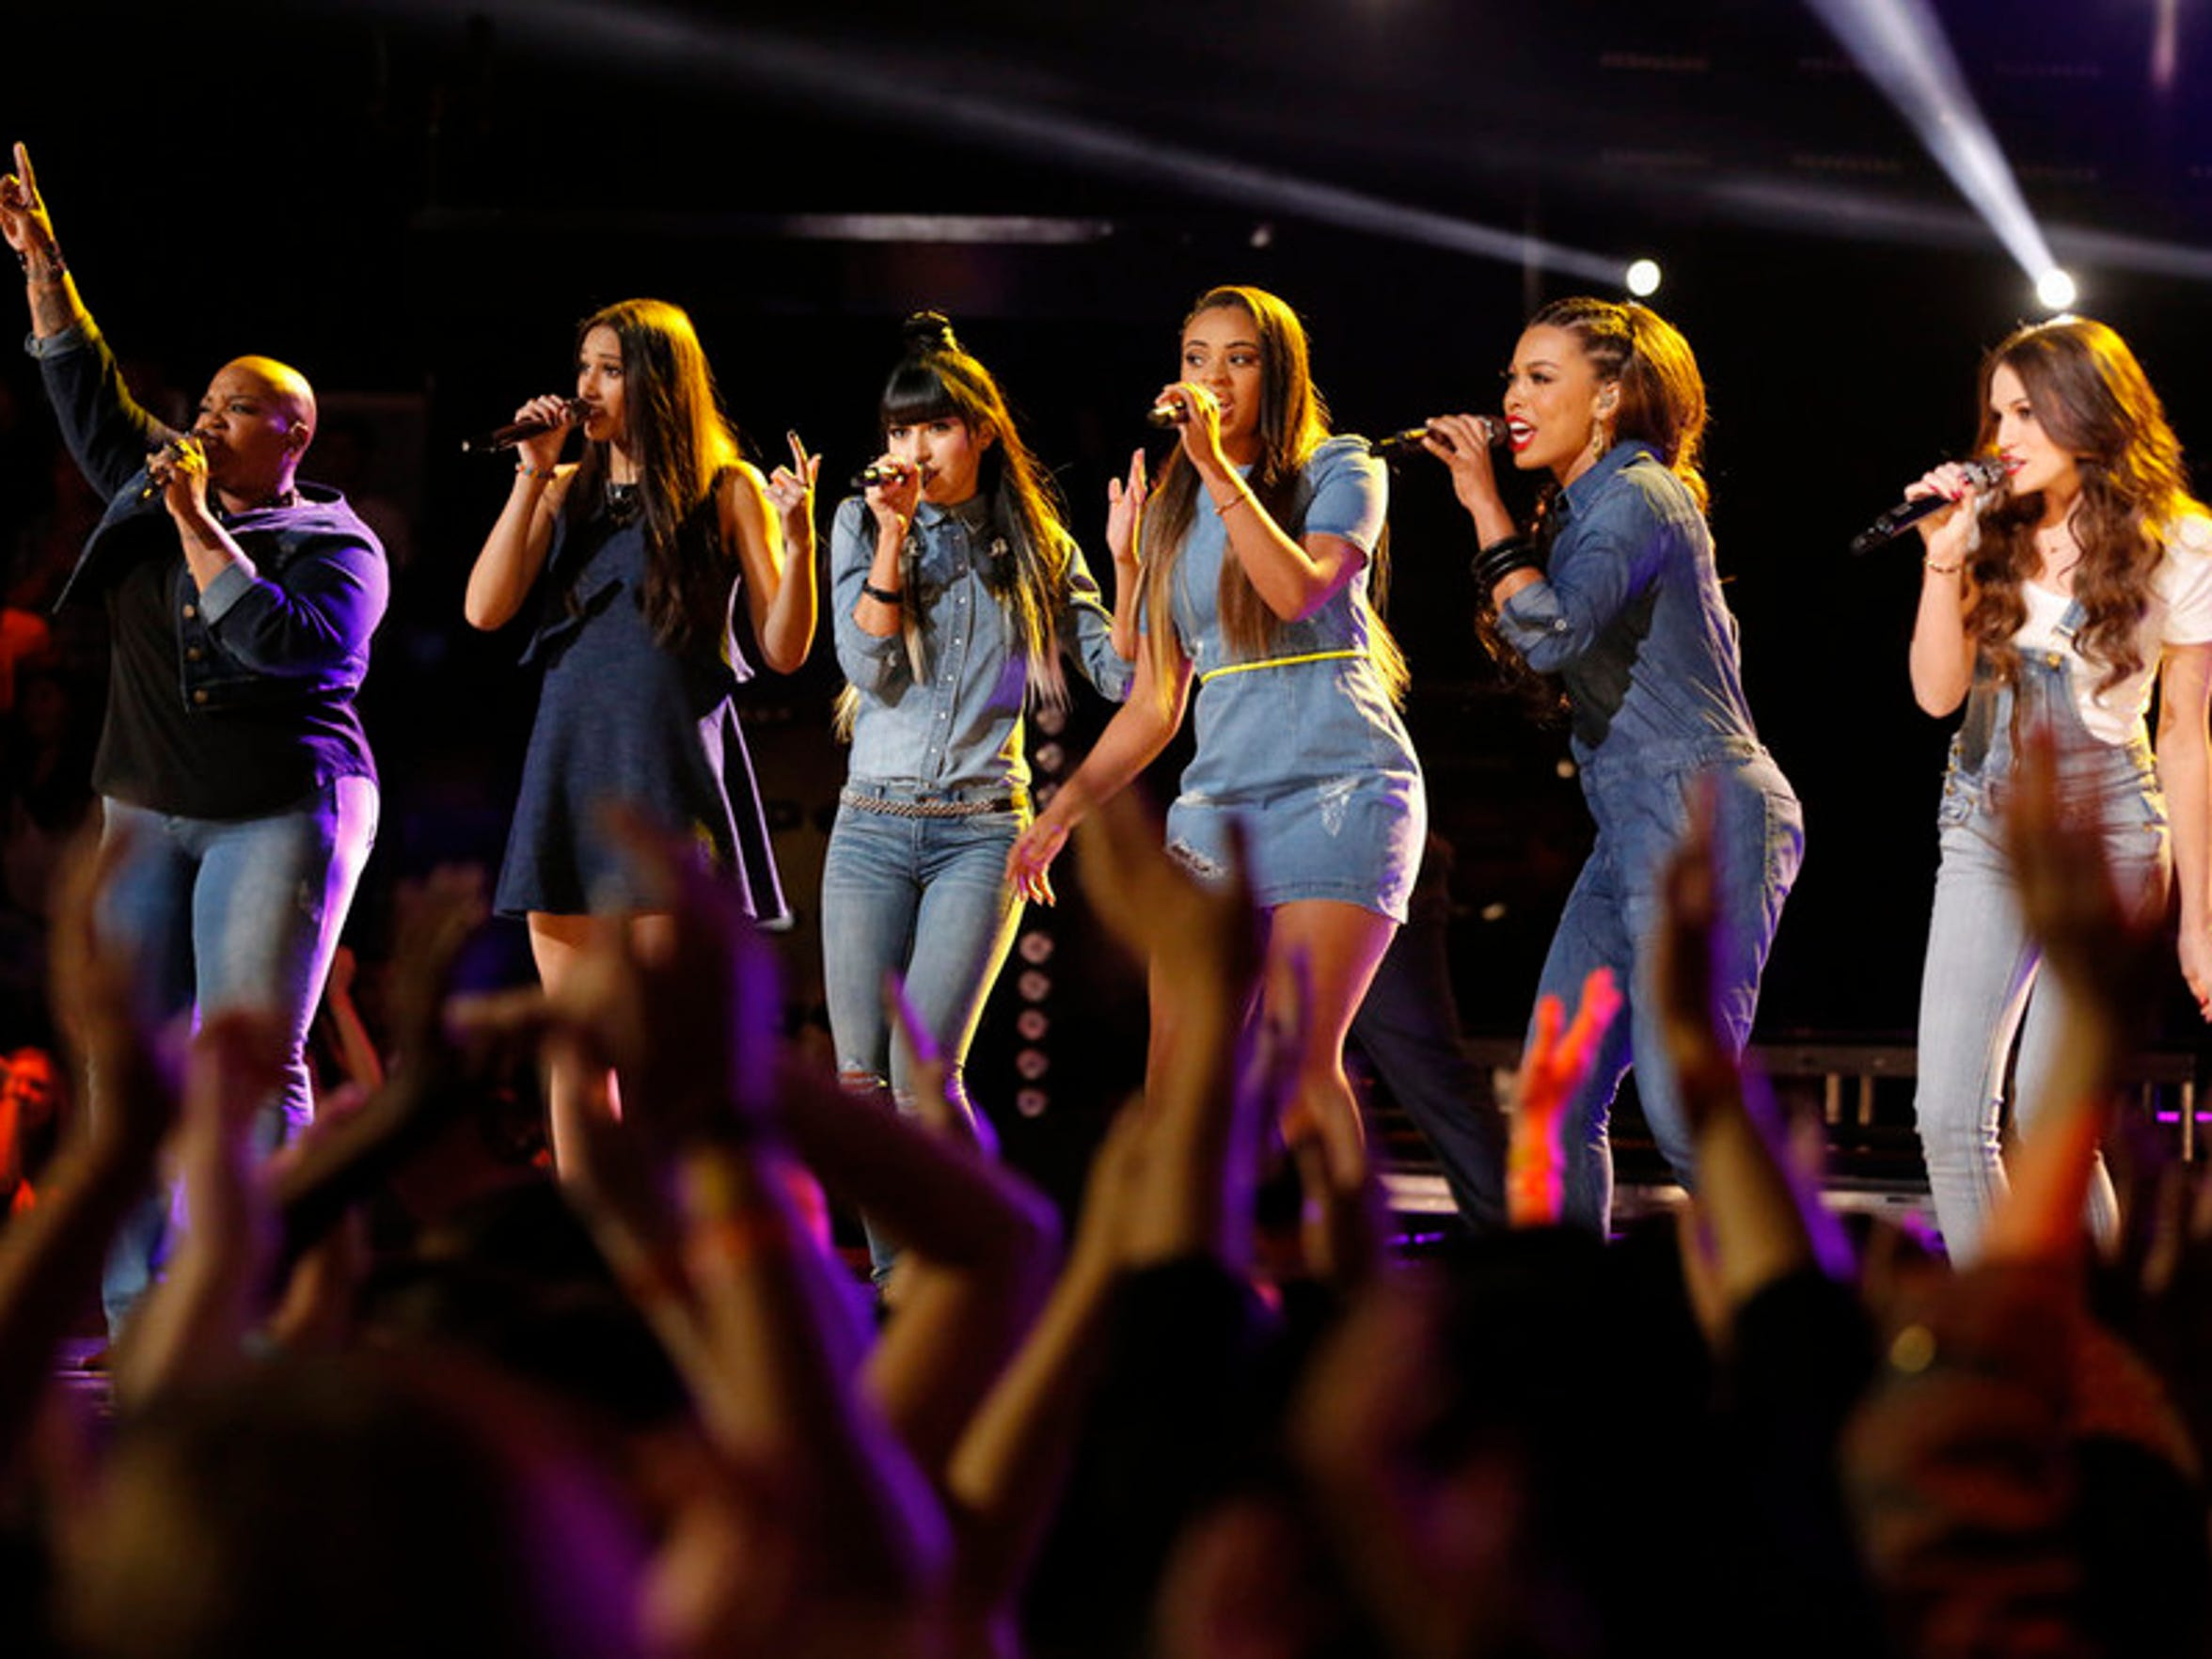 Tonya Boyd-Cannon, Lexi Davila, Mia Zanotti, Koryn Hawthorne, India Carney, Caitlin Caporale during a season 8 The Voice performance.